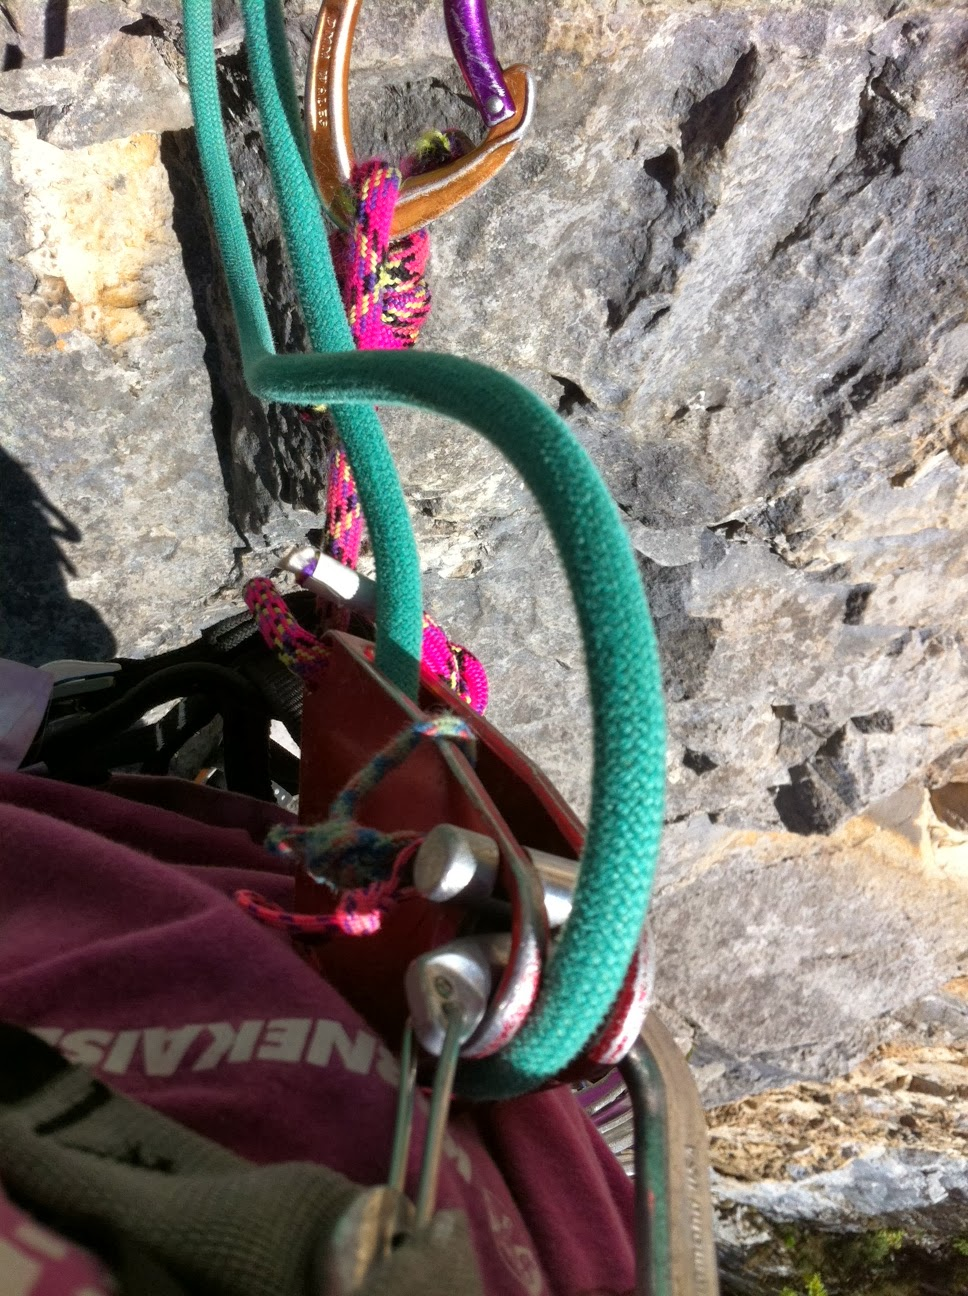 d726c3fed54 Krister Jonsson   IFMGA Mountainguide  Solo climbing - Soloisting